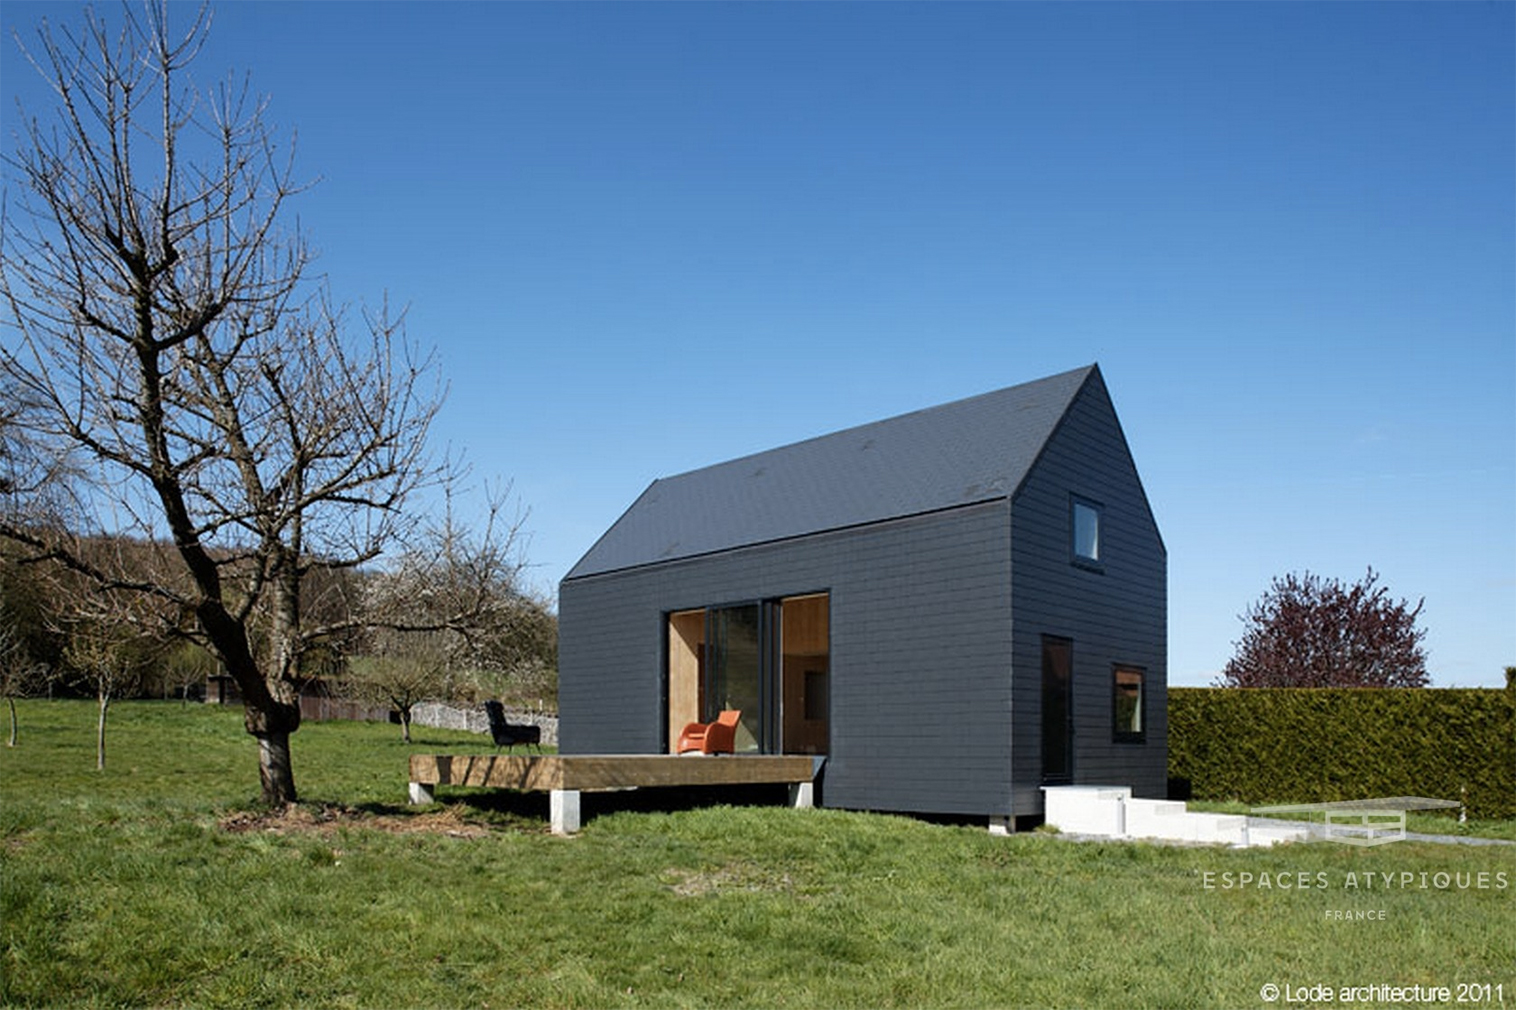 A monochrome cabin hits the market in Normandy for €300k